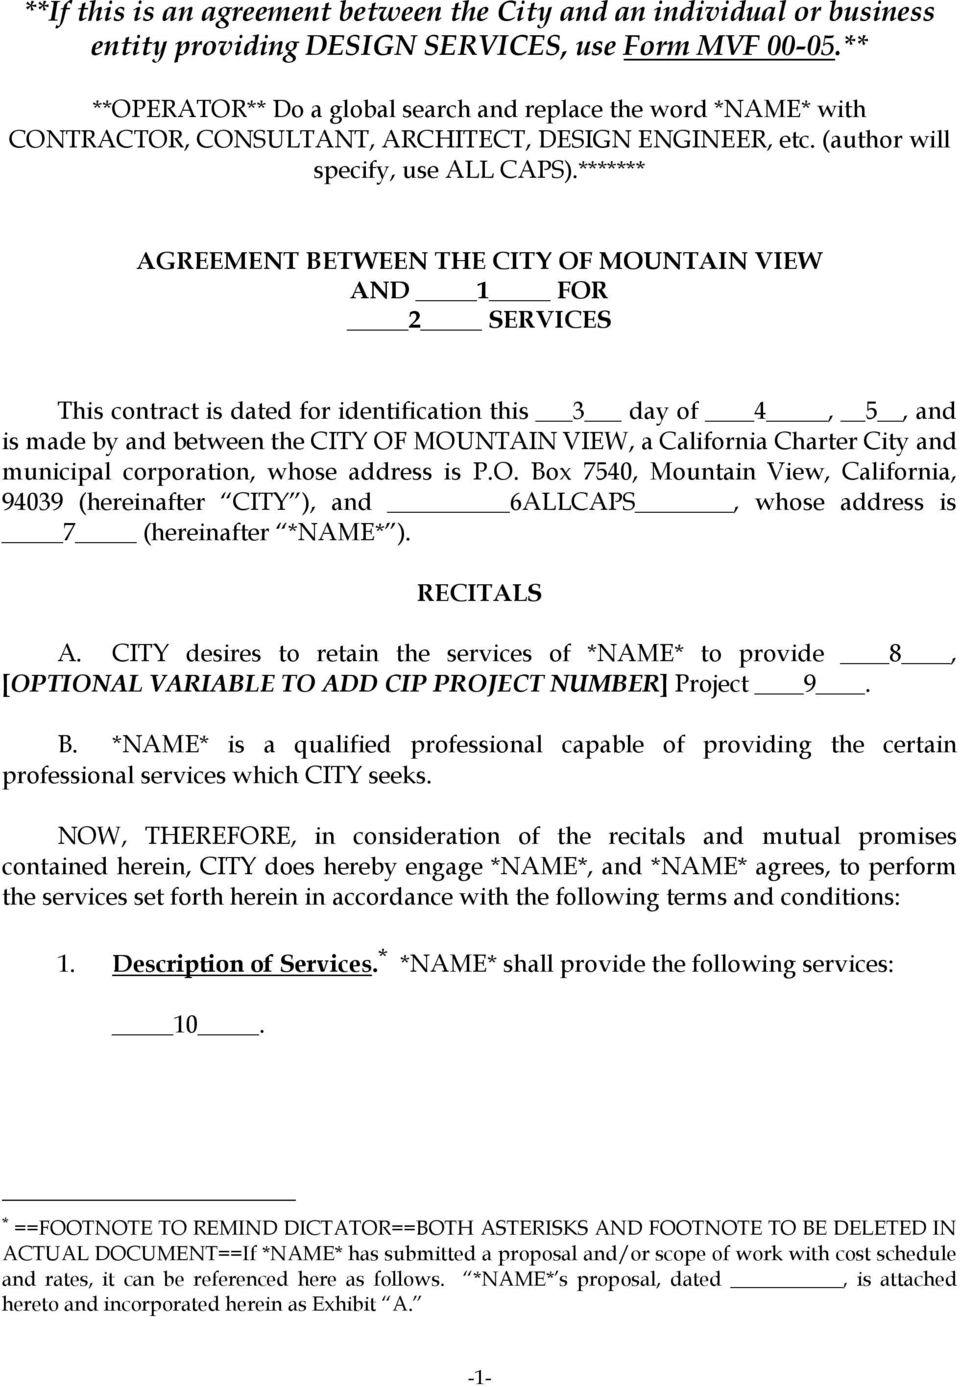 ******* AGREEMENT BETWEEN THE CITY OF MOUNTAIN VIEW AND 1 FOR 2 SERVICES This contract is dated for identification this 3 day of 4, 5, and is made by and between the CITY OF MOUNTAIN VIEW, a